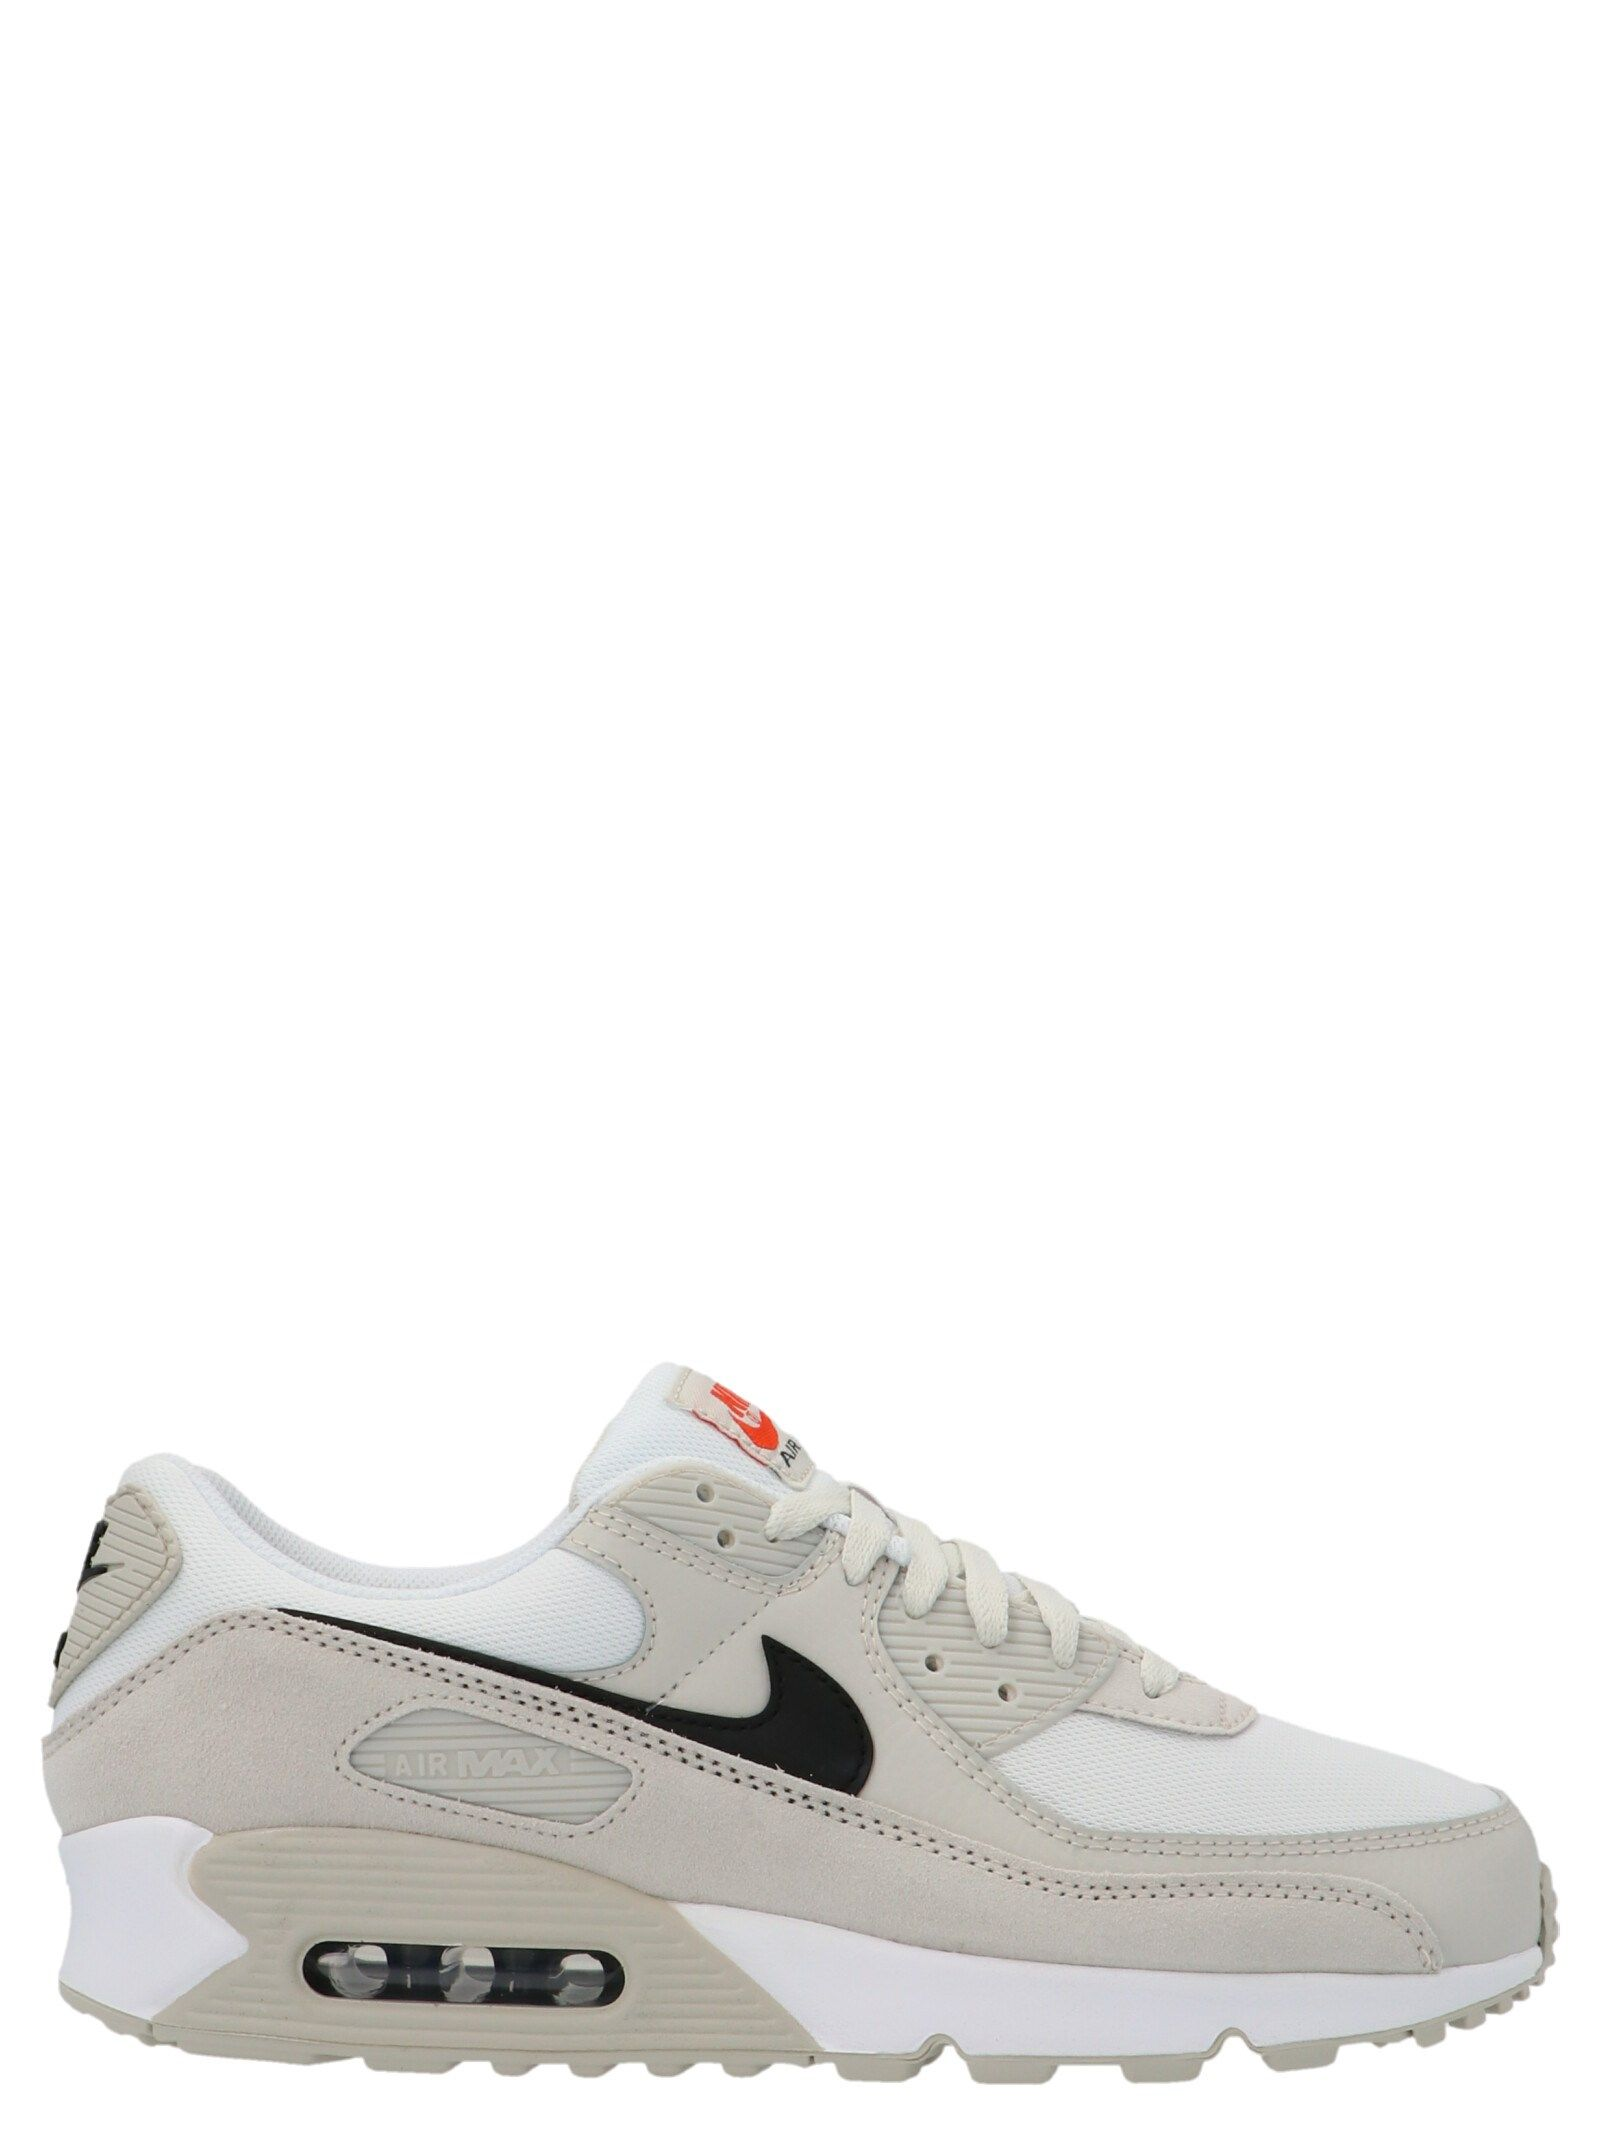 Nike Sneakers NIKE MEN'S DH4103100 MULTICOLOR OTHER MATERIALS SNEAKERS